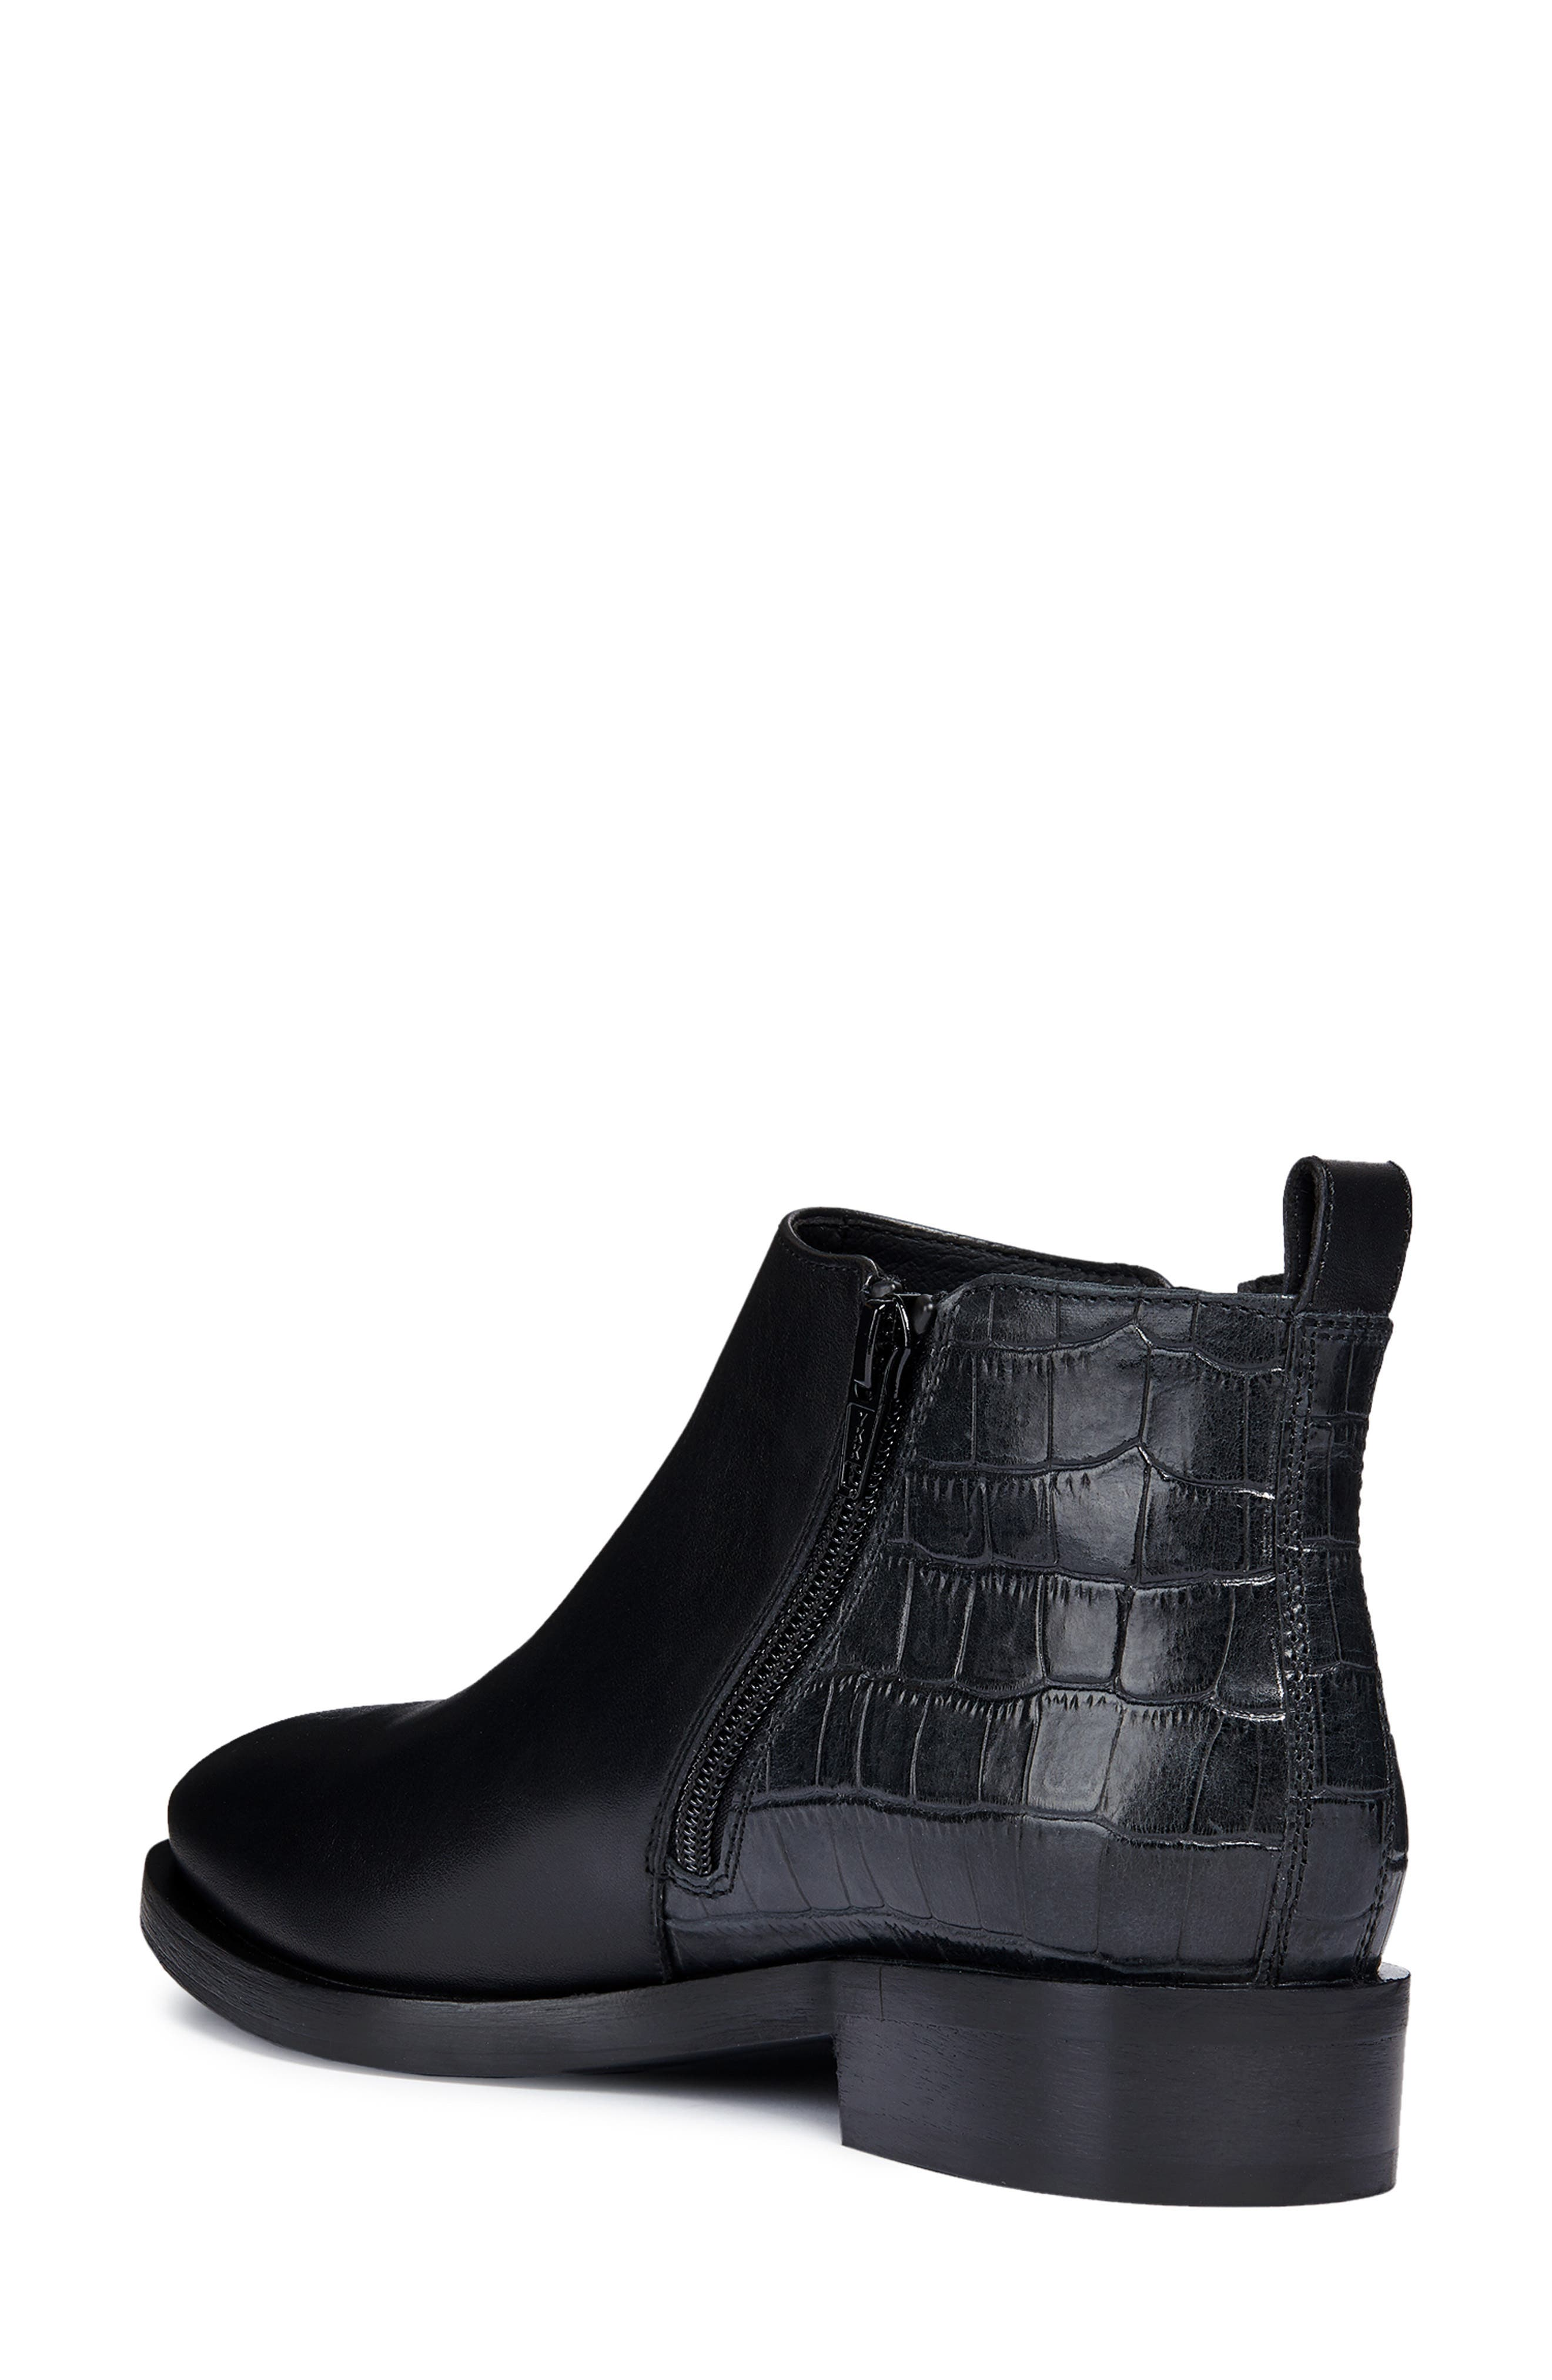 Brogue Bootie,                             Alternate thumbnail 2, color,                             BLACK LEATHER